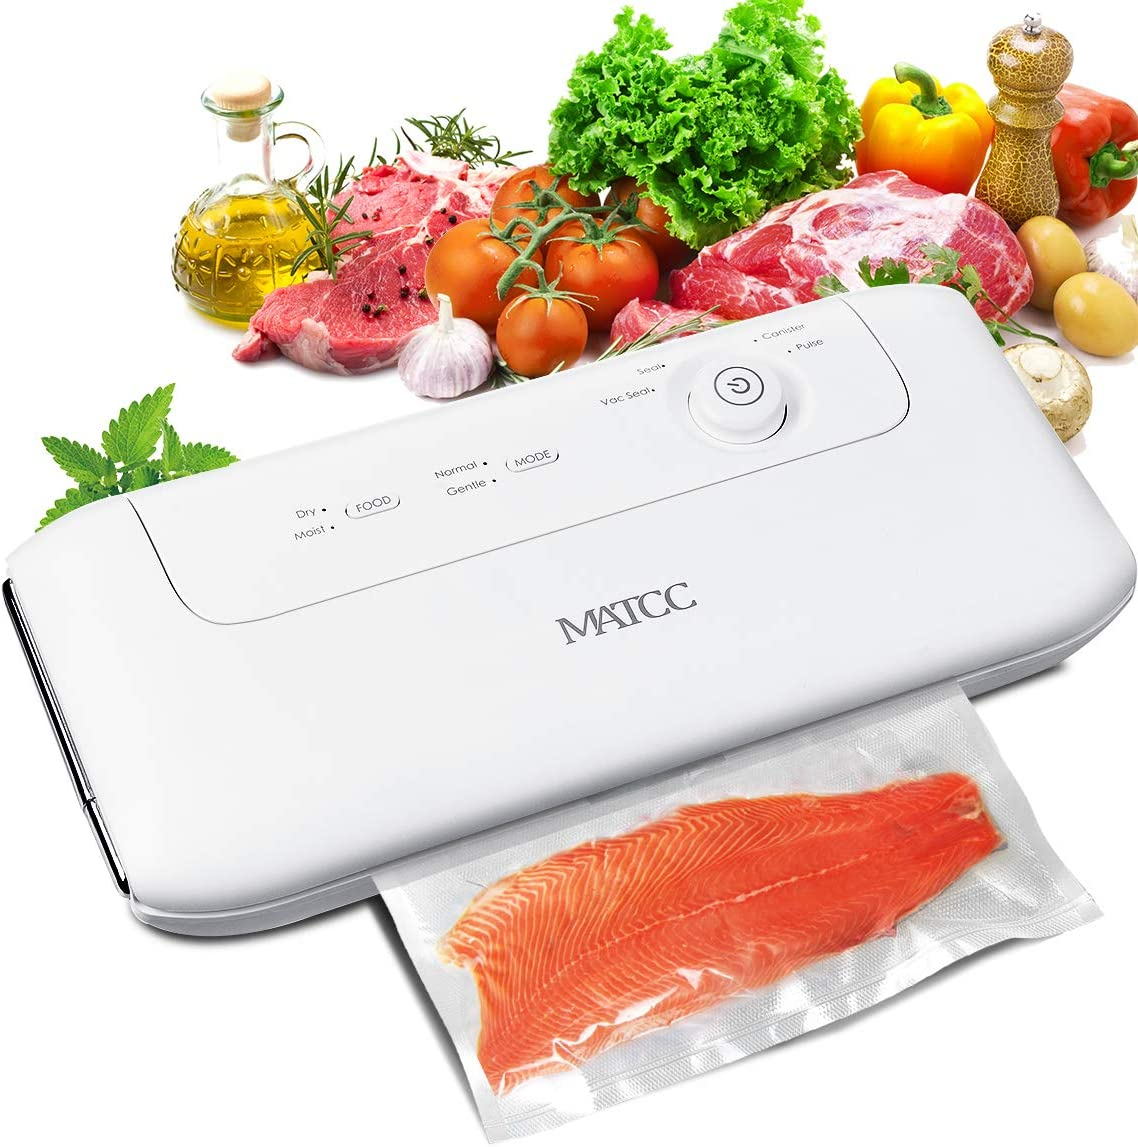 MATCC Vacuum Sealer Machine Automatic Manual Vacuum Sealing Machine for Food Sealer with Built-in Cutter and Replaceable Sealing Strip One-knob Button Sealing System Dry Moist Vacuum Packing Machine